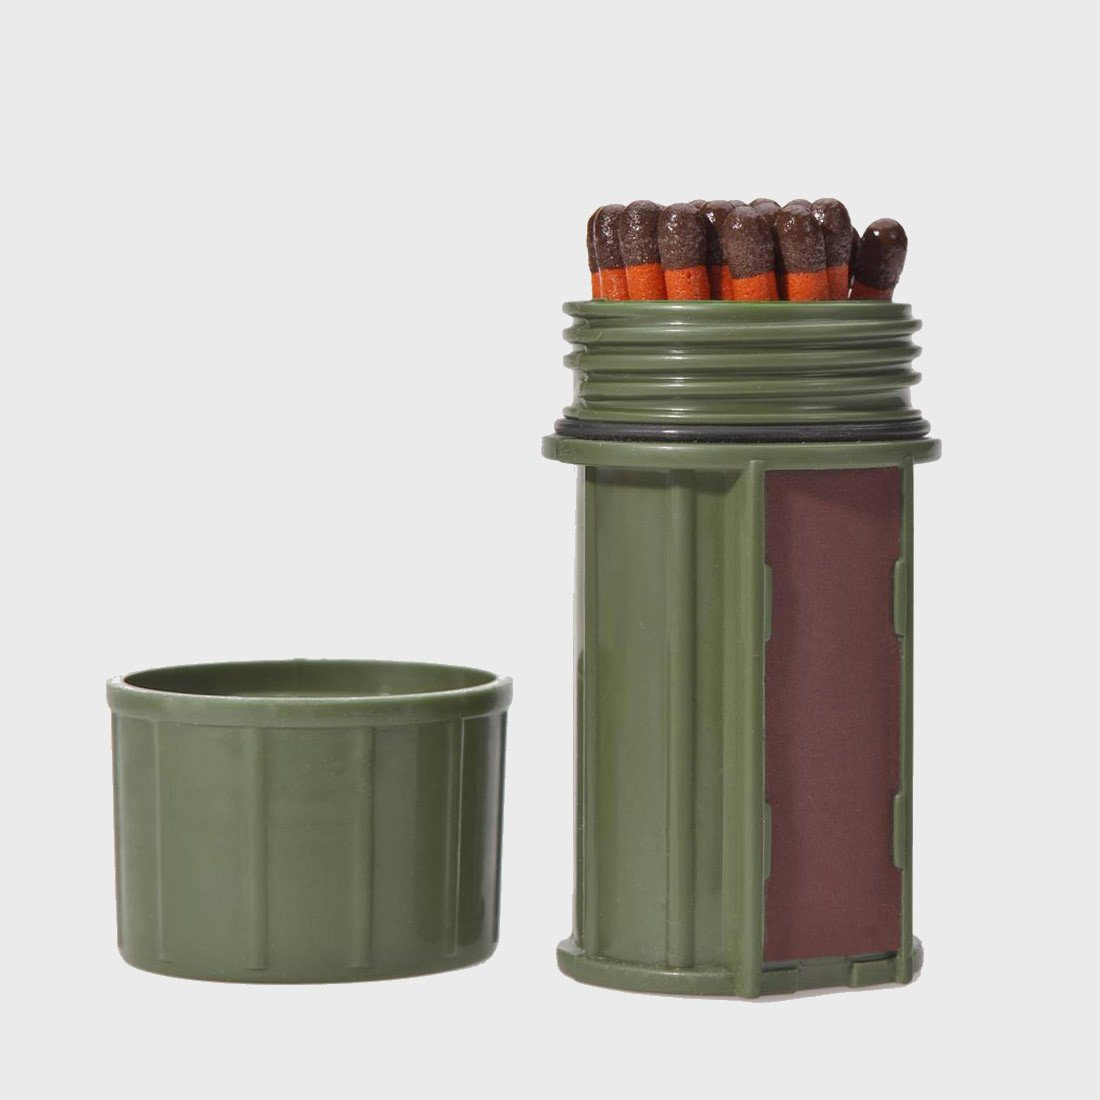 UCO Match Container with Matches Dark Green